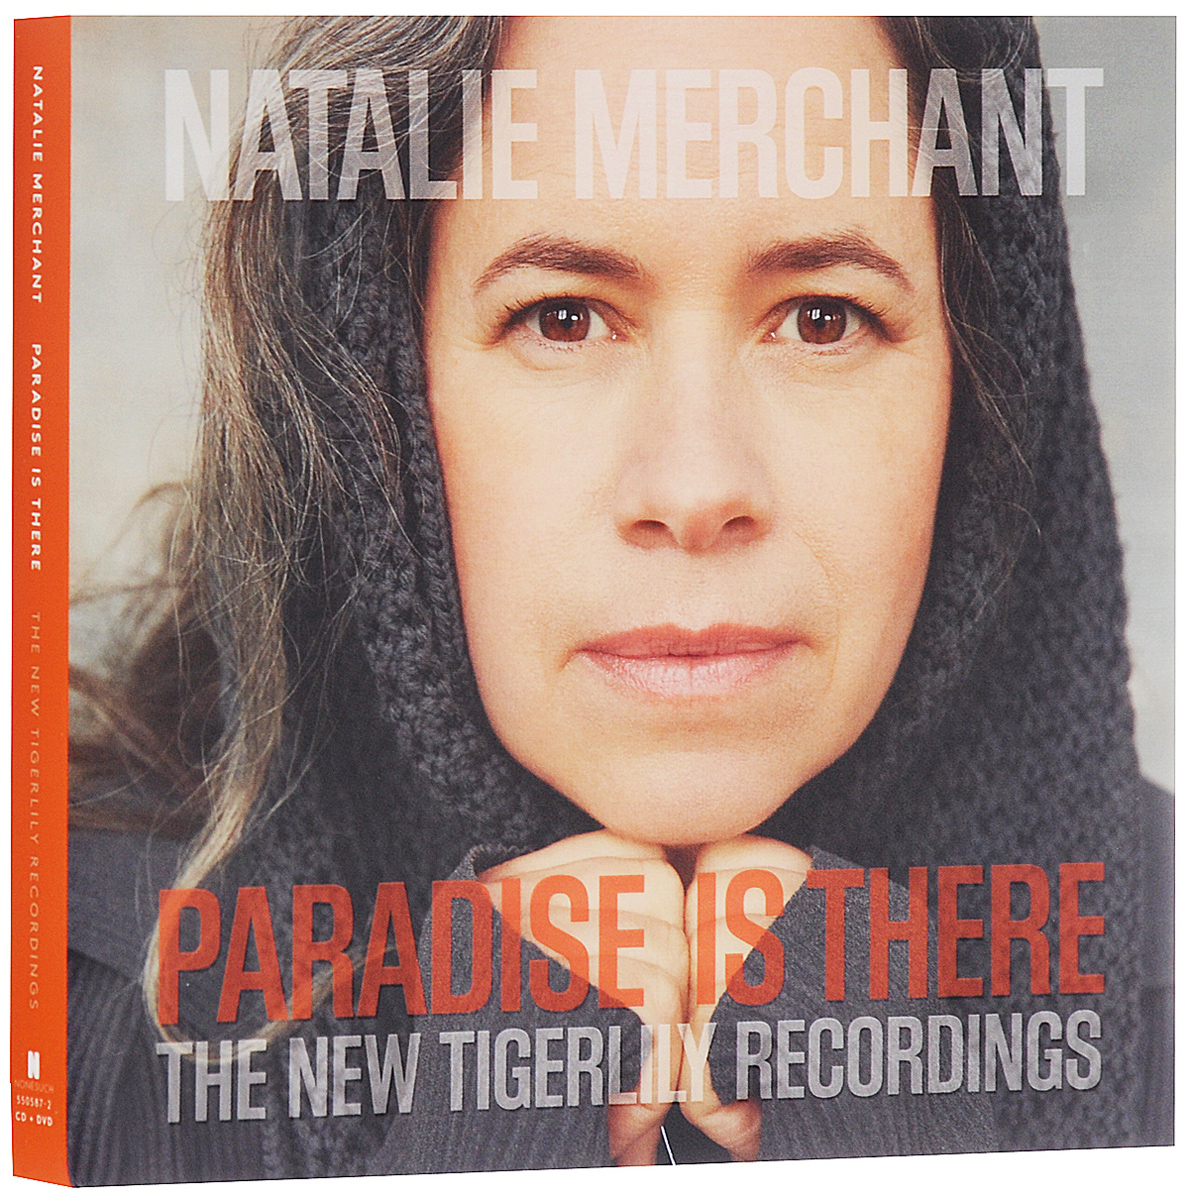 Натали Мерчант Natalie Merchant. Paradise Is There. The New Tigerlily Recordings (CD + DVD)